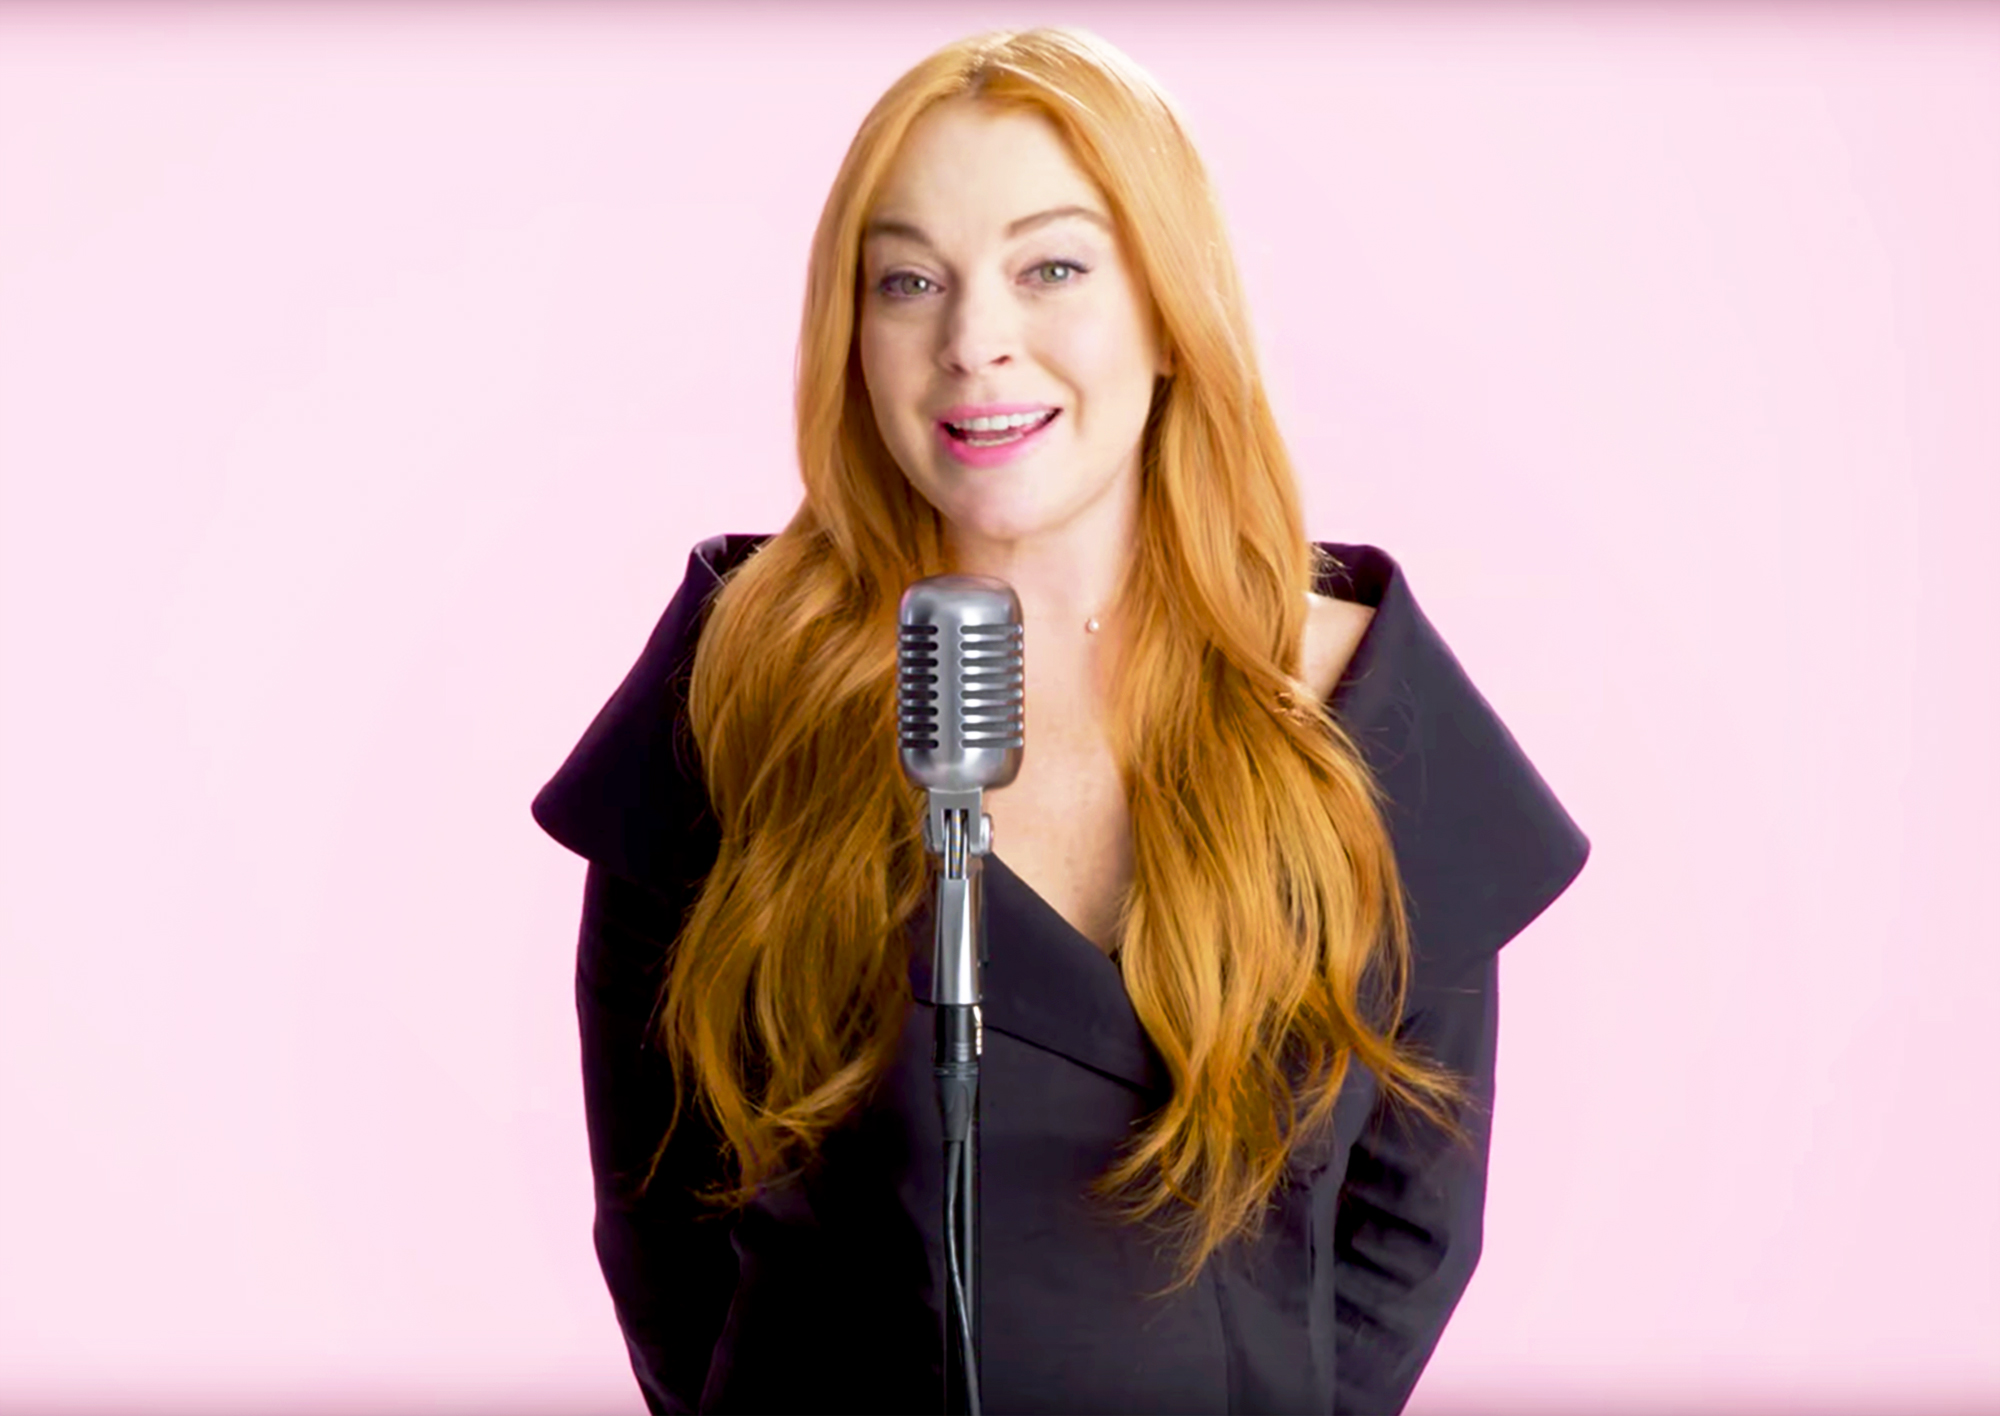 Lindsay Lohan Makes Fetch Happen, Recreates Iconic 'Mean Girls' Quotes